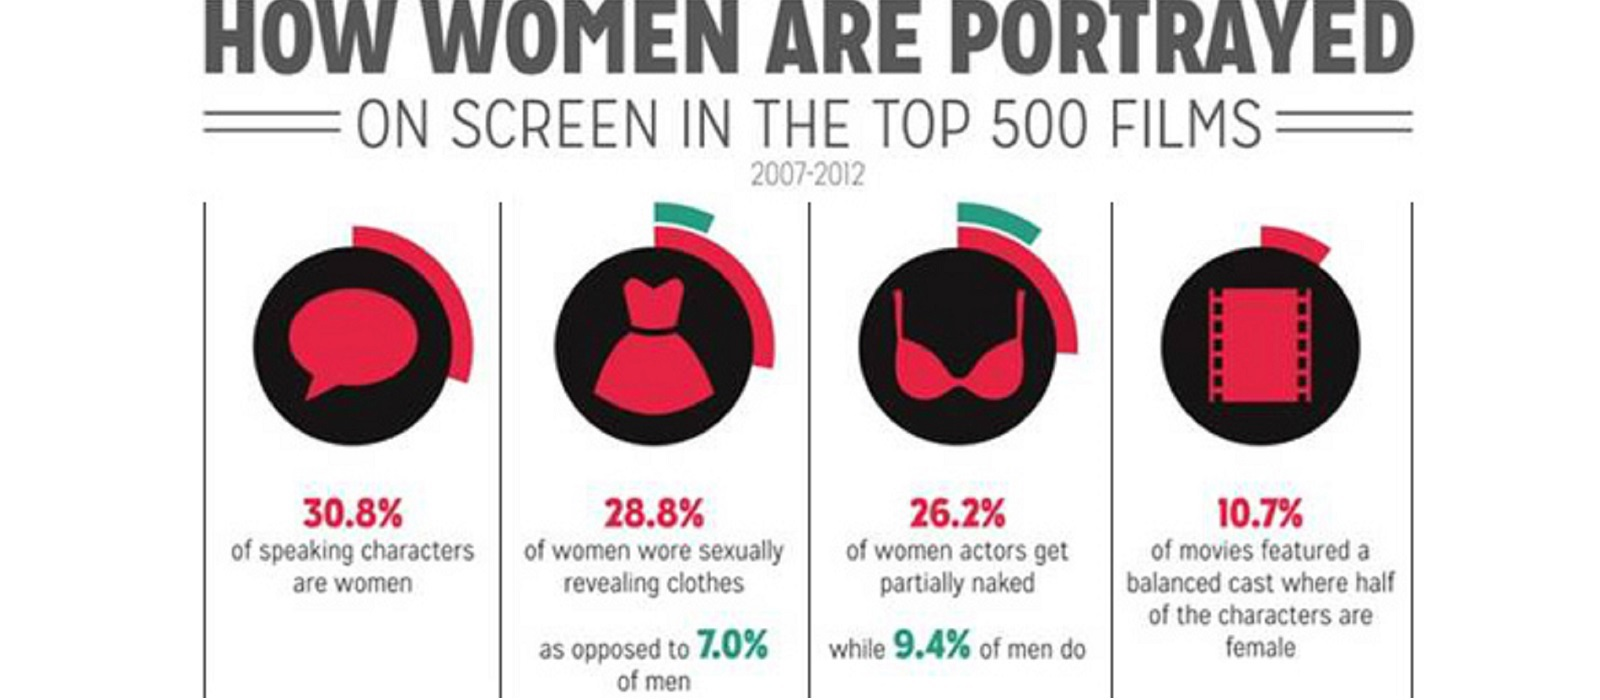 statistics on how women are portrayed in films